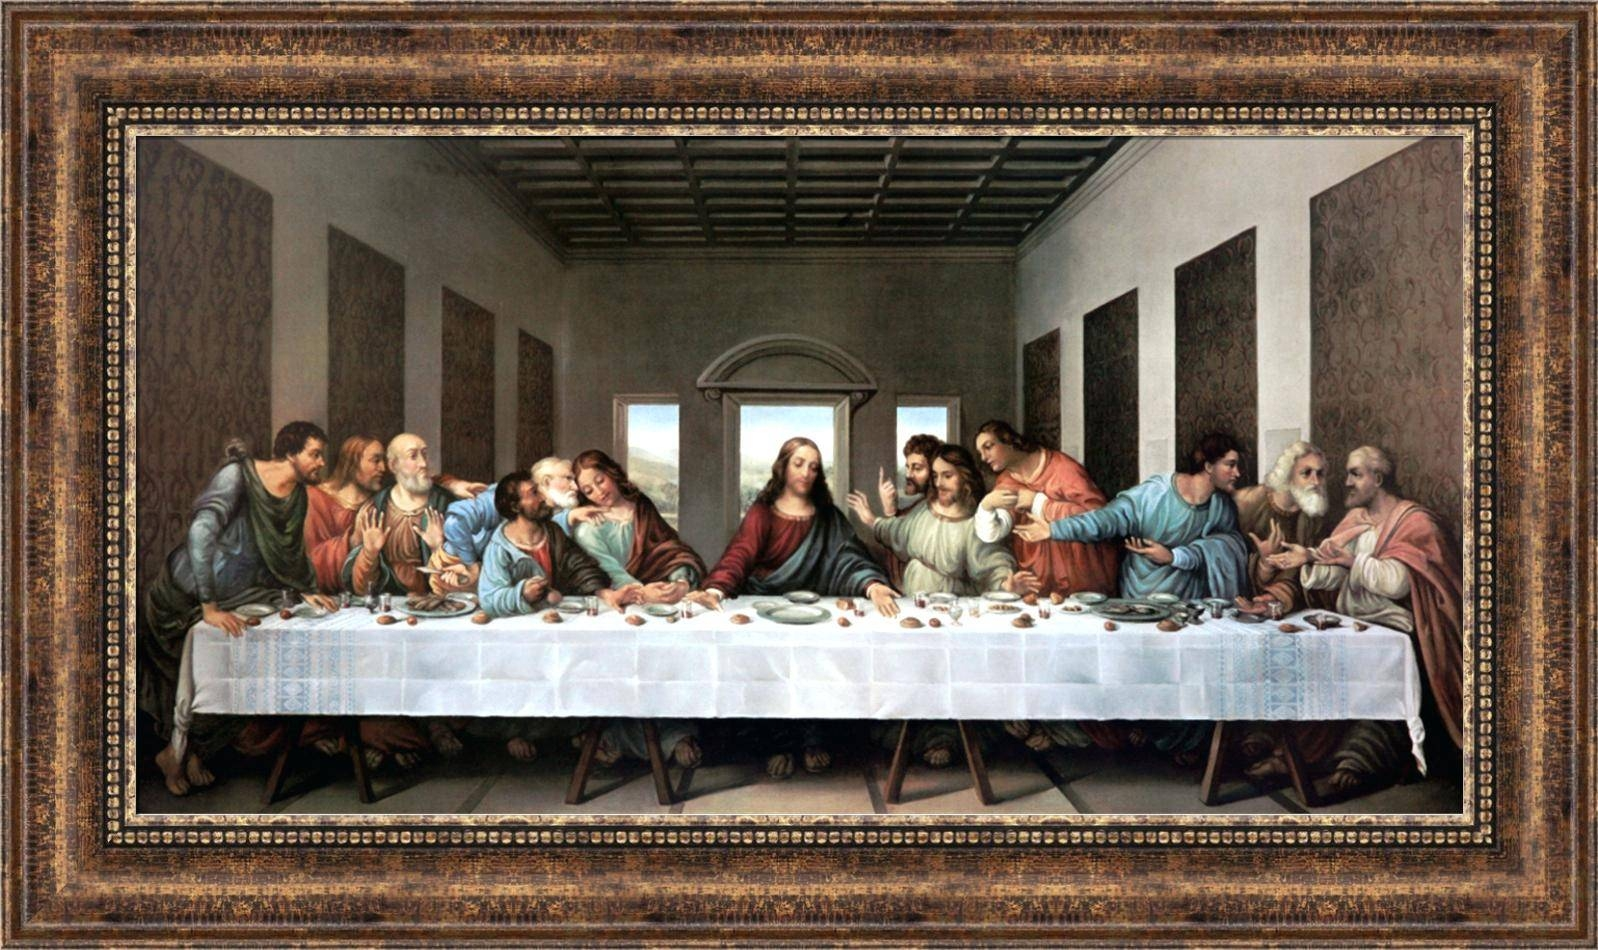 Wall Decor : The Last Supper Last Supper Scroll Christian Art Throughout Most Up To Date Last Supper Wall Art (View 18 of 20)